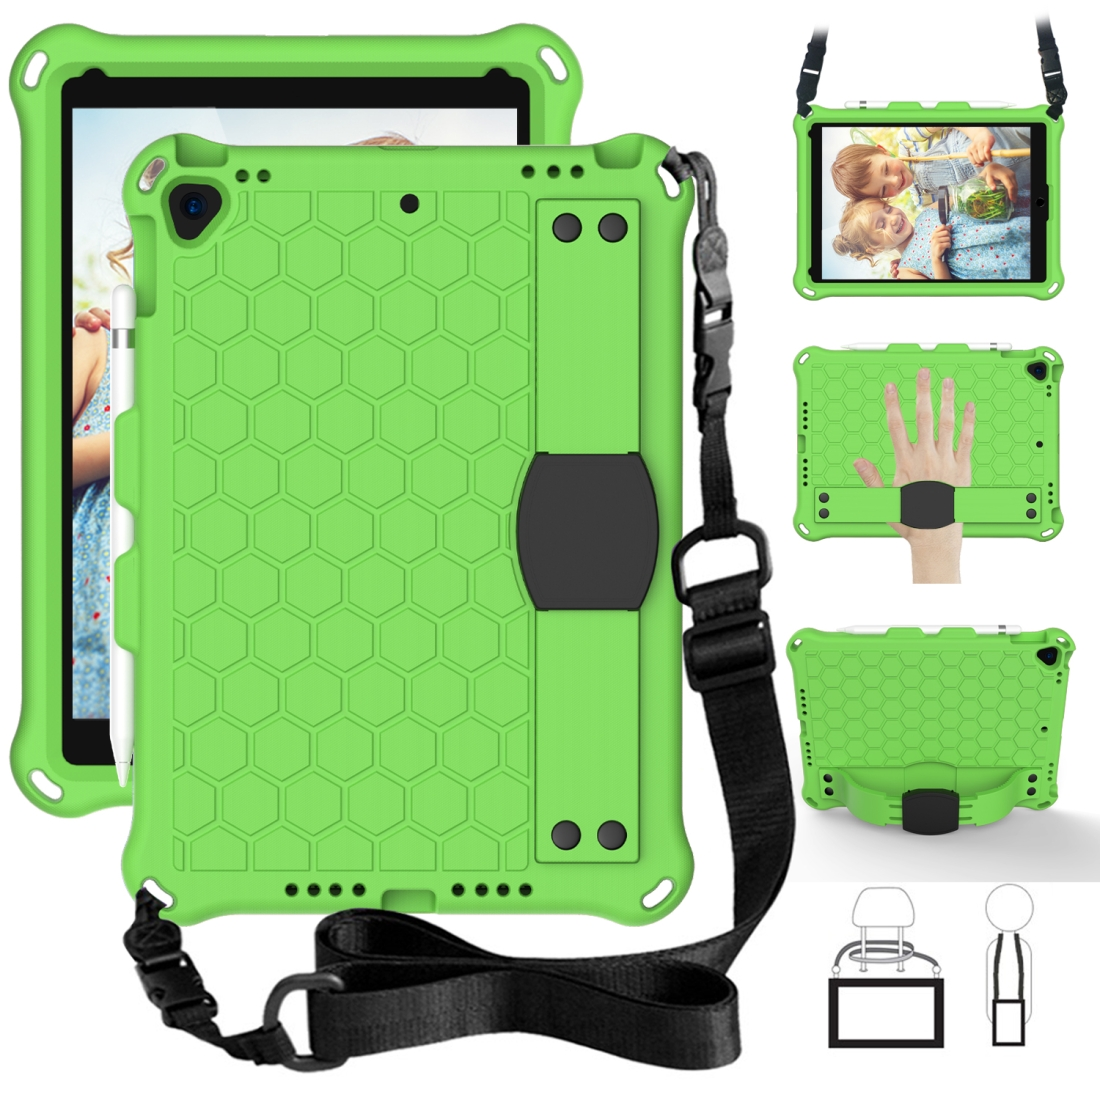 iPad Air 3 Case (10.5 Inch) Honeycomb Design Four Corner Protective Shell With Straps (Green/Black)